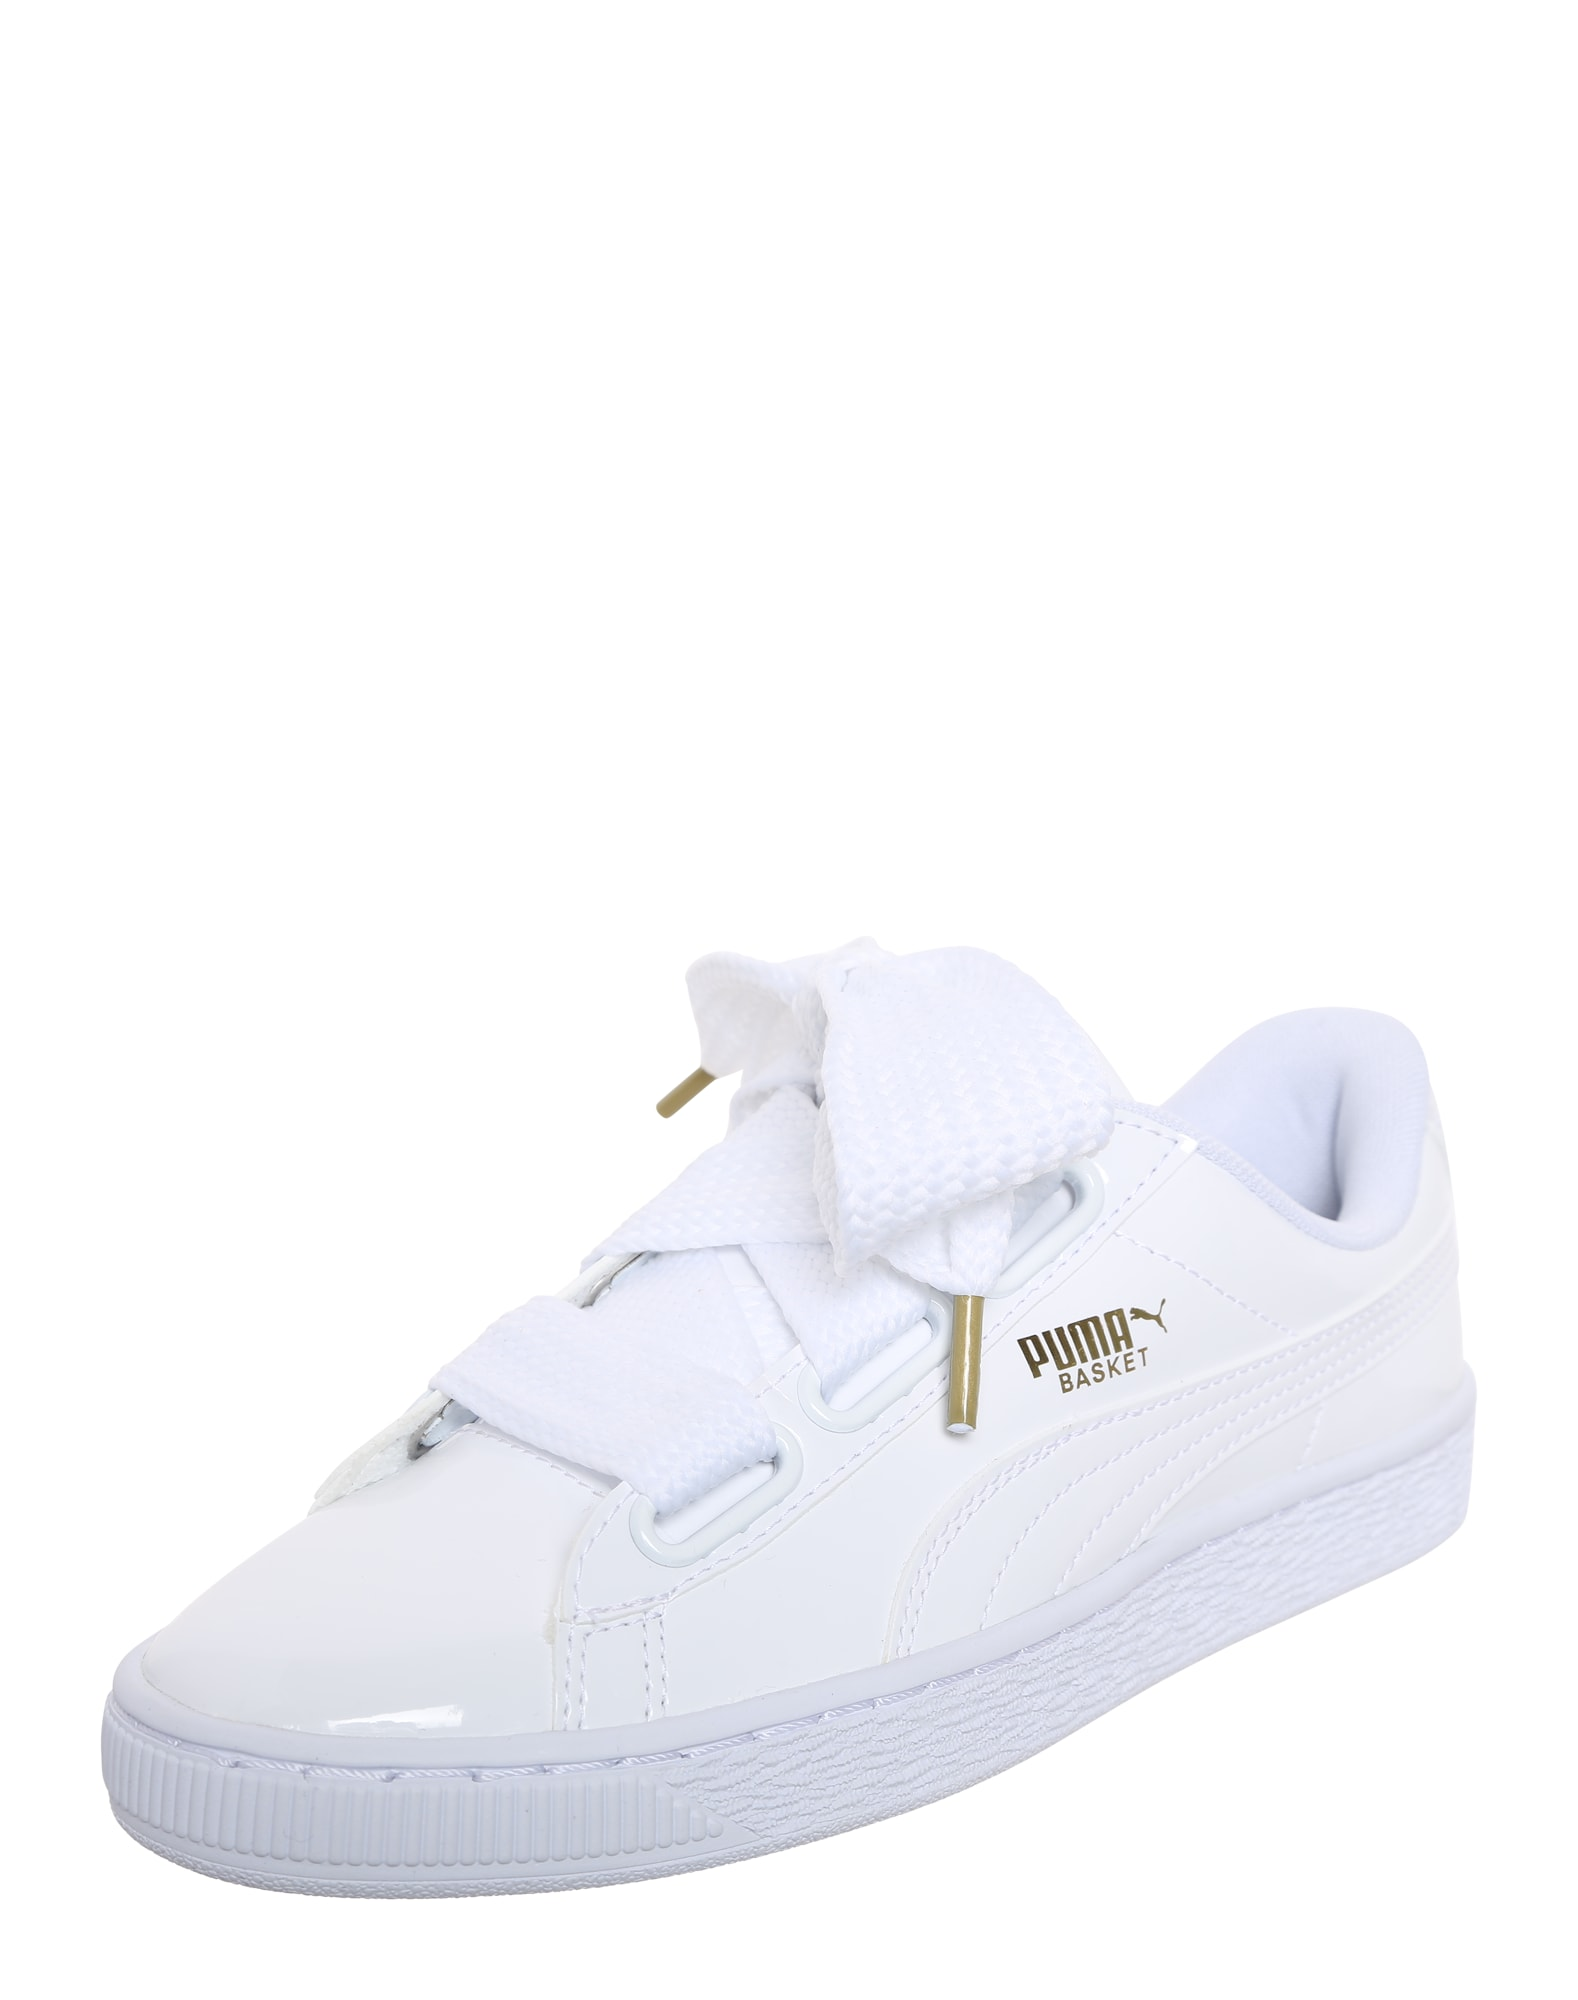 PUMA, Dames Sneakers laag 'Basket Heart Patent', wit